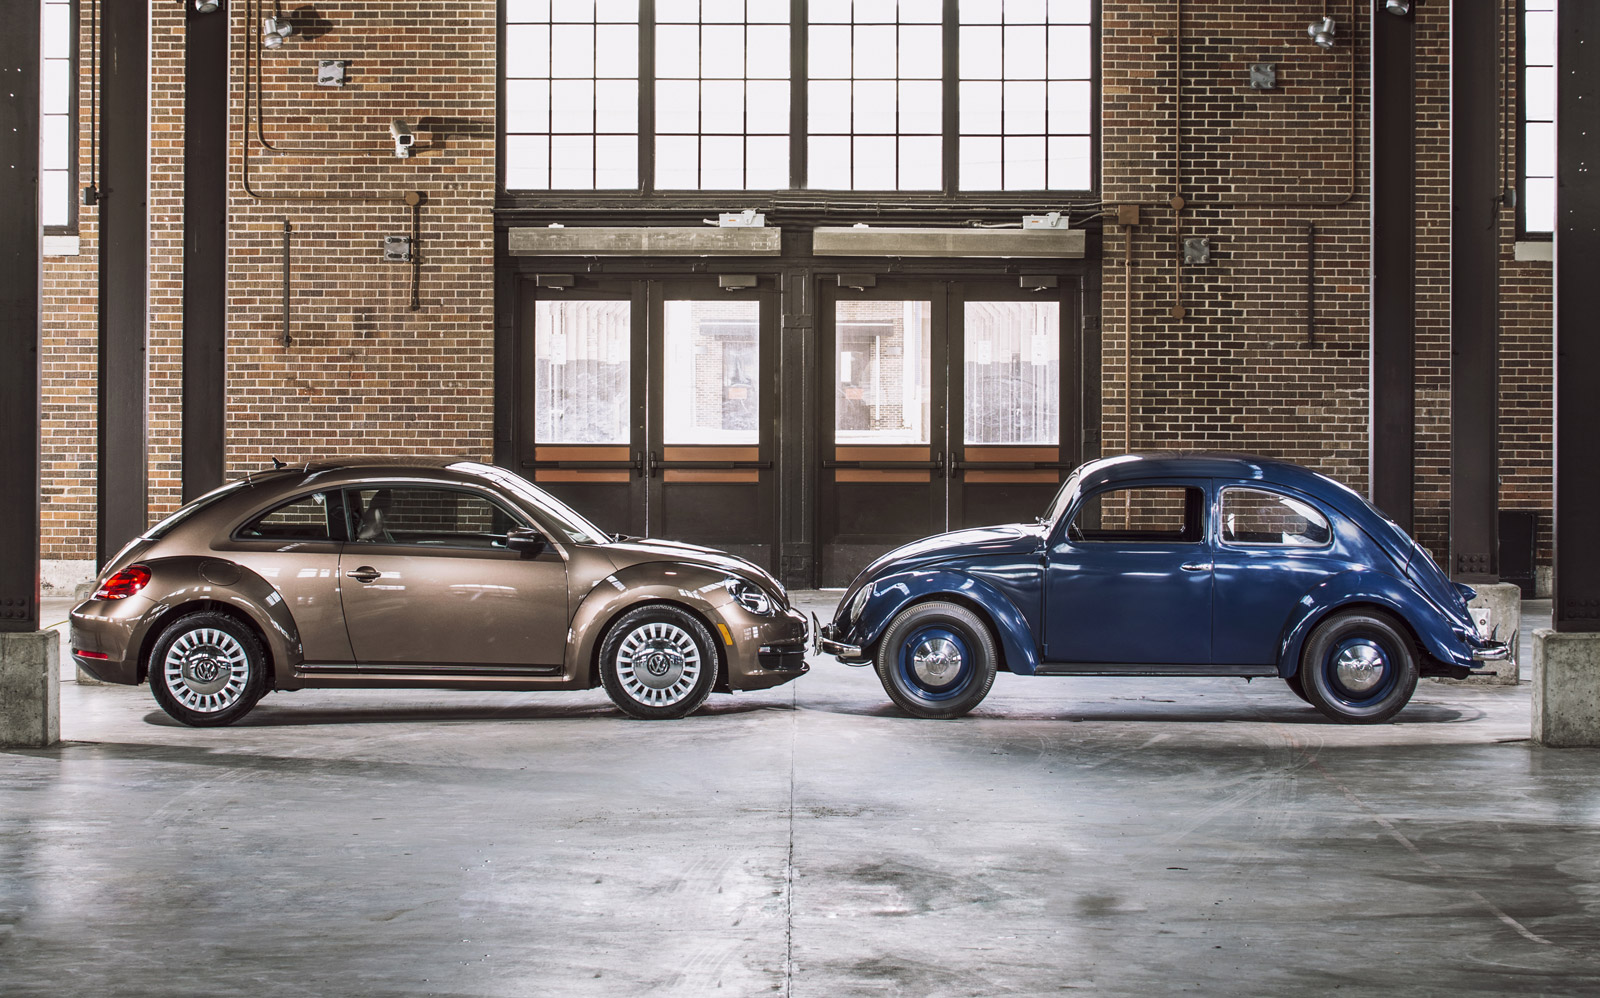 Best electric cars 2017 volkswagen tesla and more the week uk - Vw Beetle Celebrates 65 Years In U S With A Few Missing